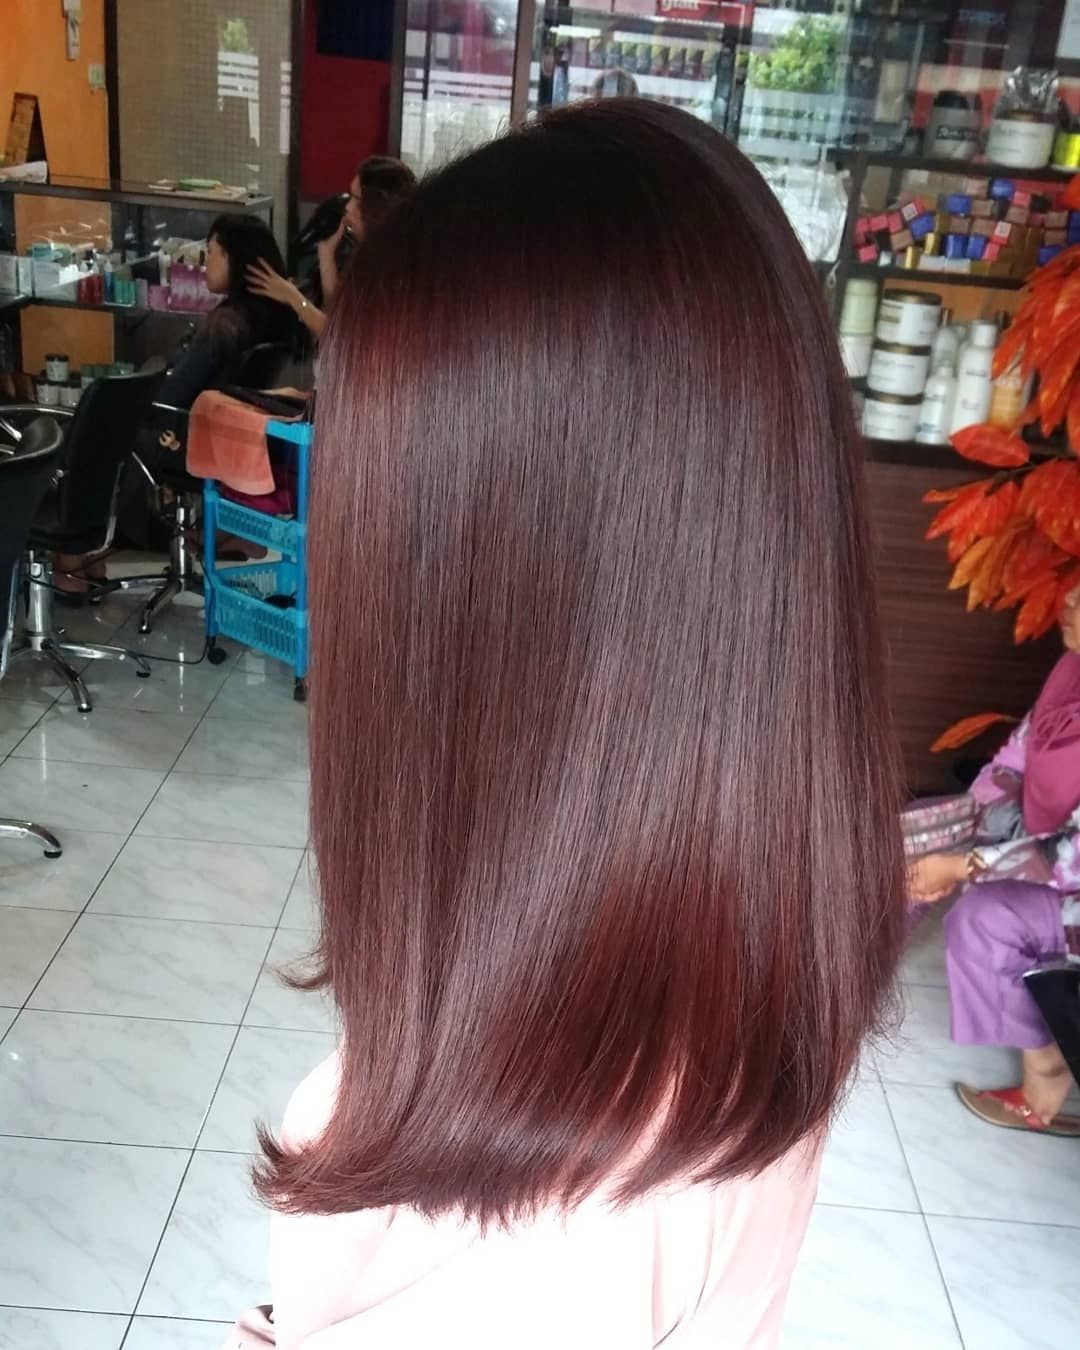 Hair Color Red Chocolate by @wenkgo. Love the result 😍😘😘👍👍